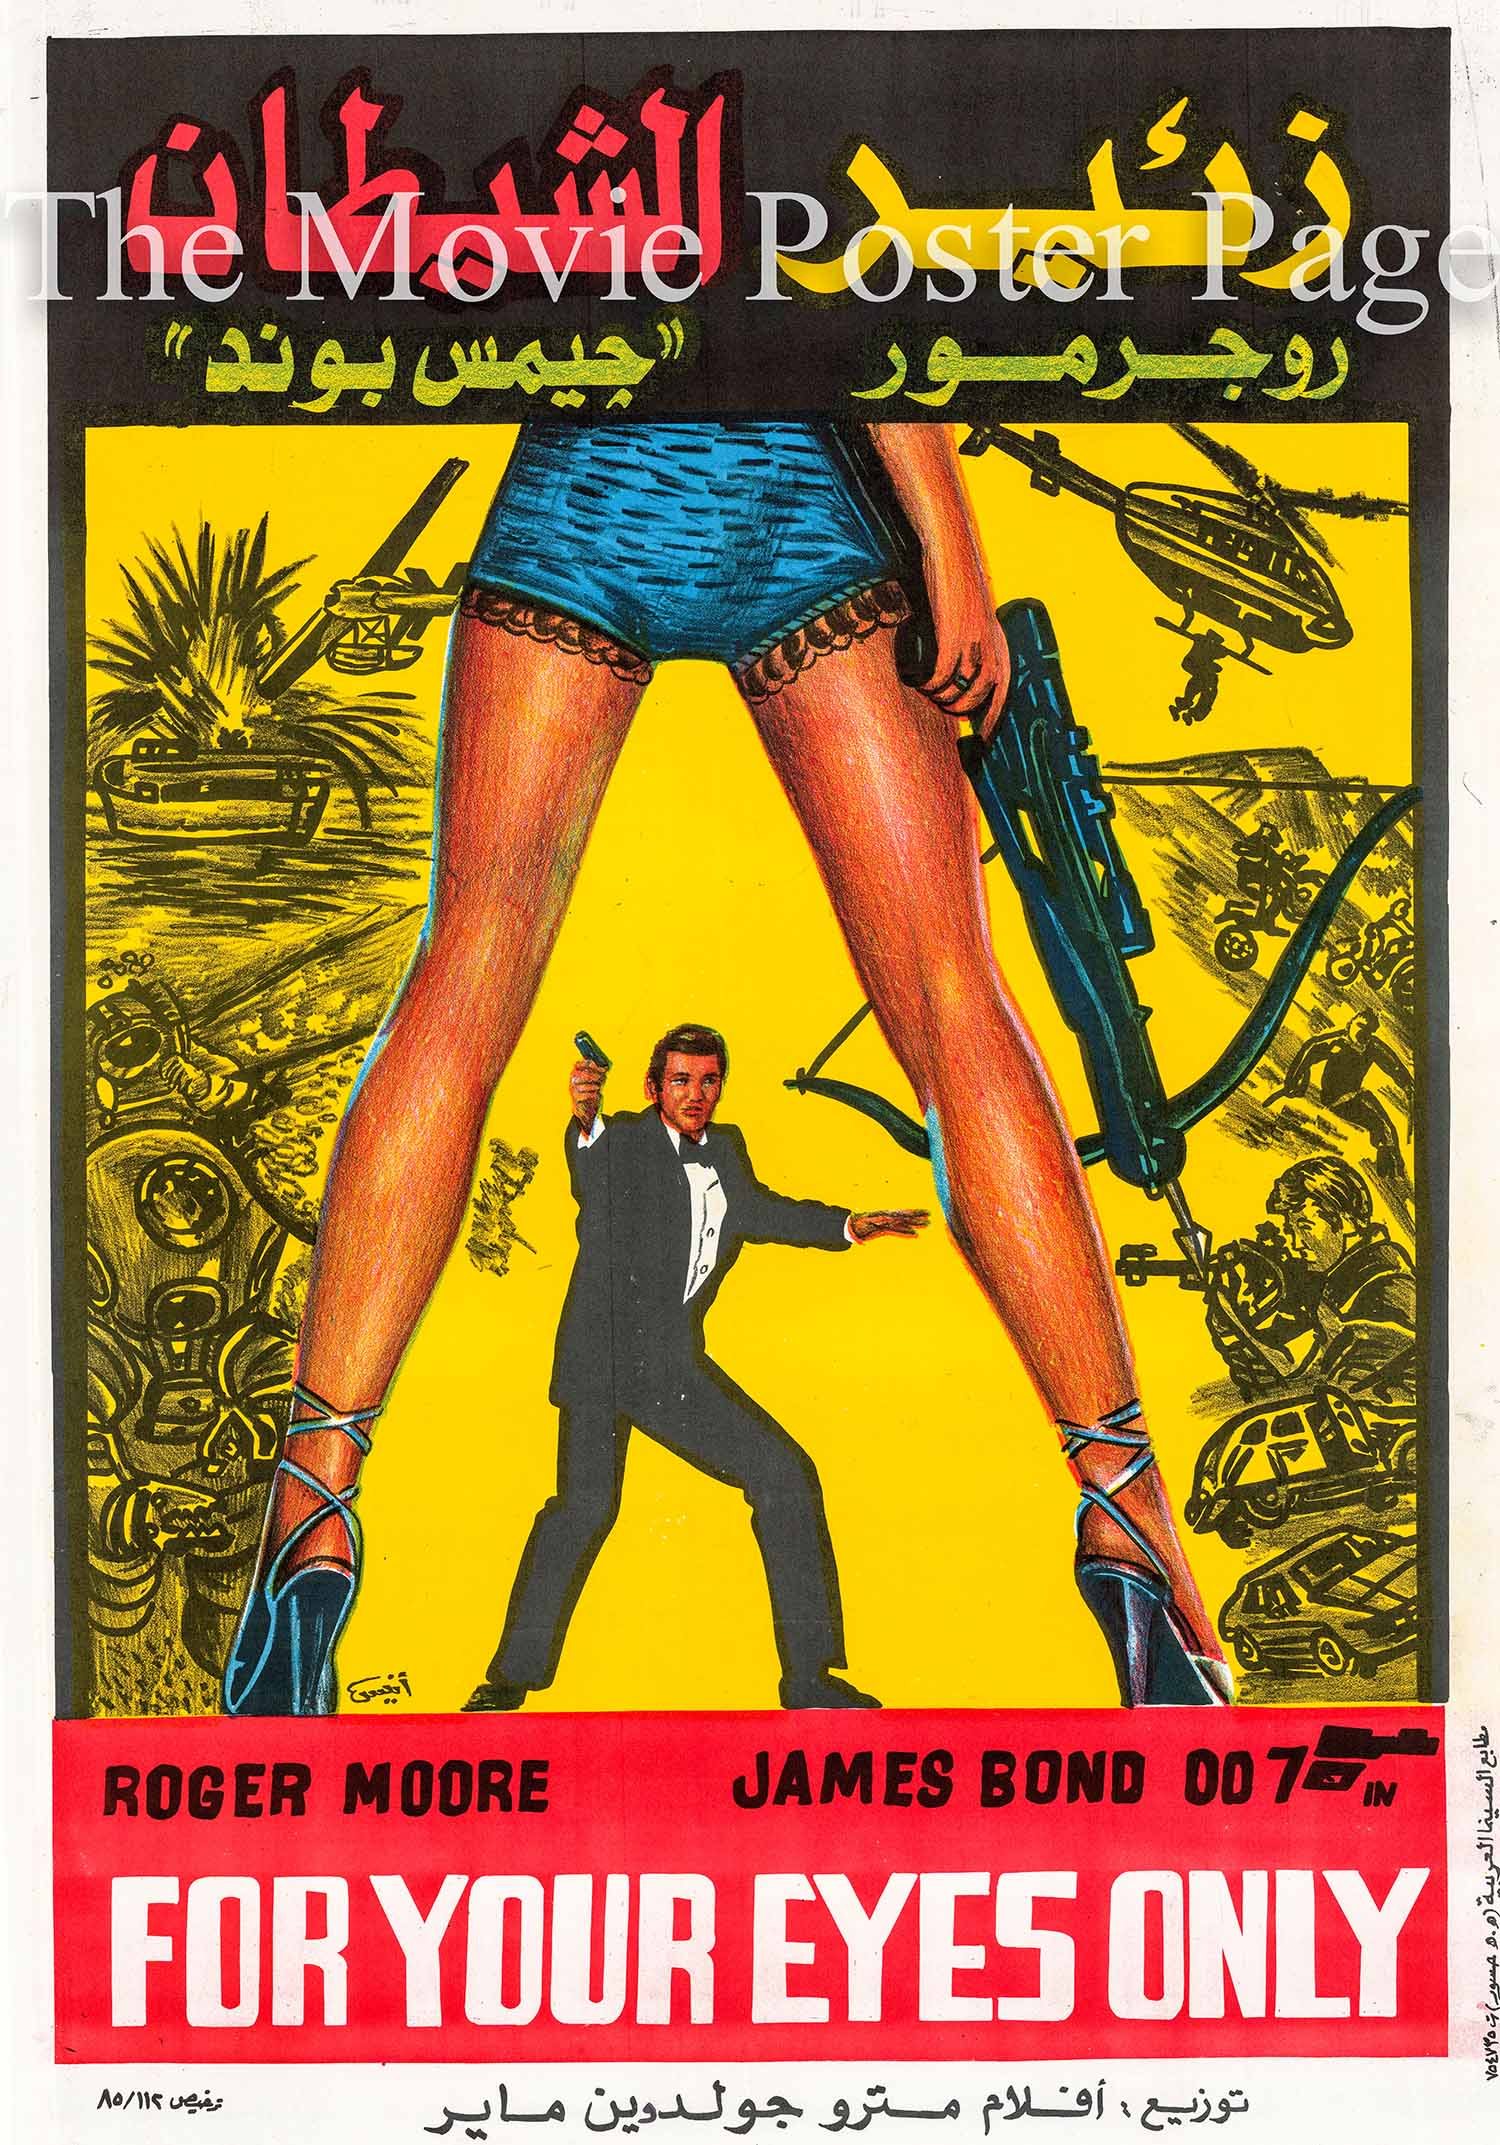 Pictured is an Egyptian promotional poster for the 1981 John Glen James Bond film For Your Eyes Only starring Roger Moore.